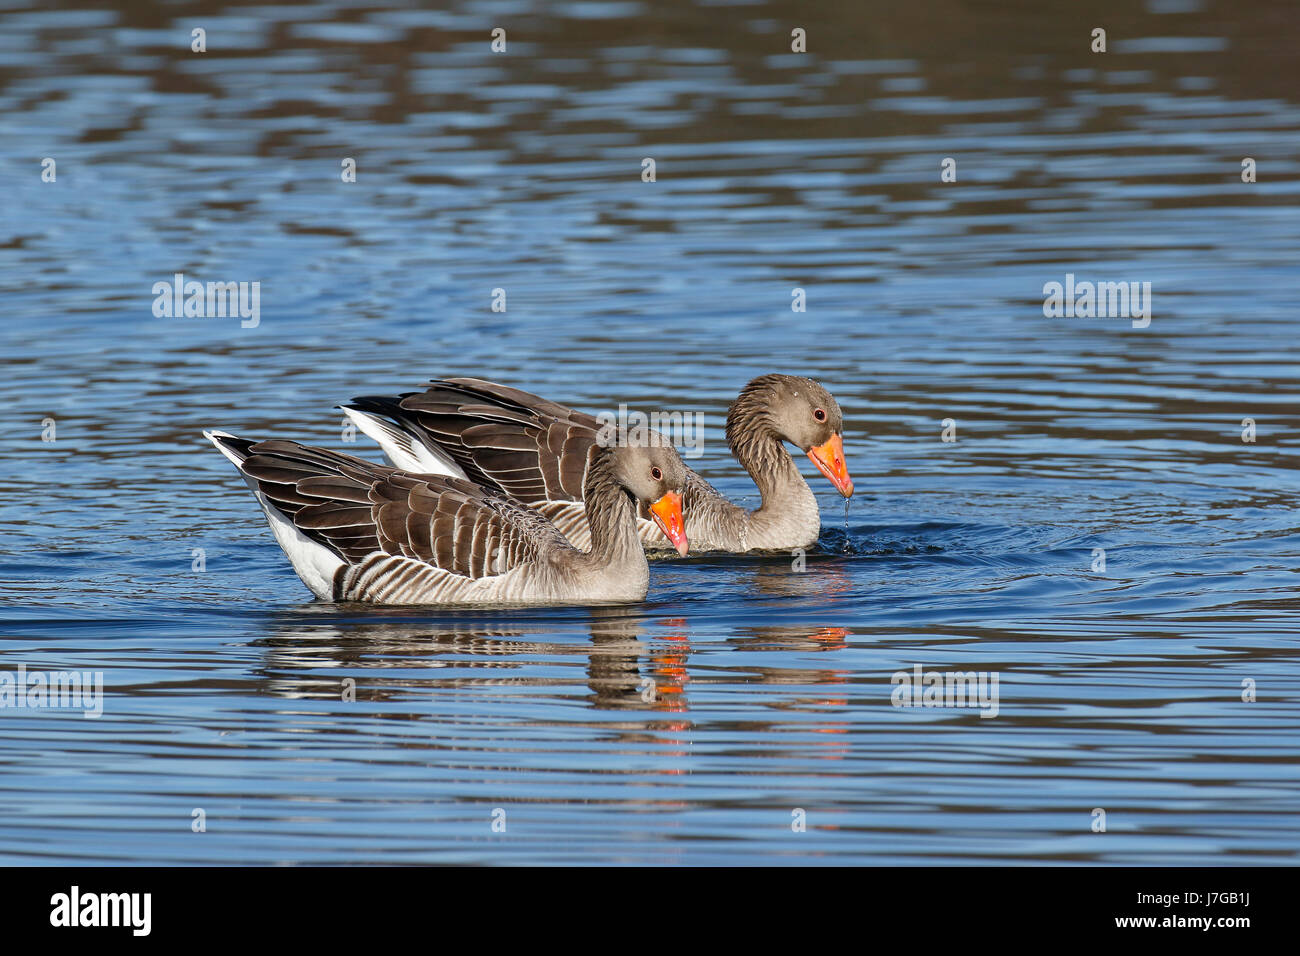 Courting Greylag gooses (Anser anser), animal couple swimming in the water, Hamburg, Germany - Stock Image